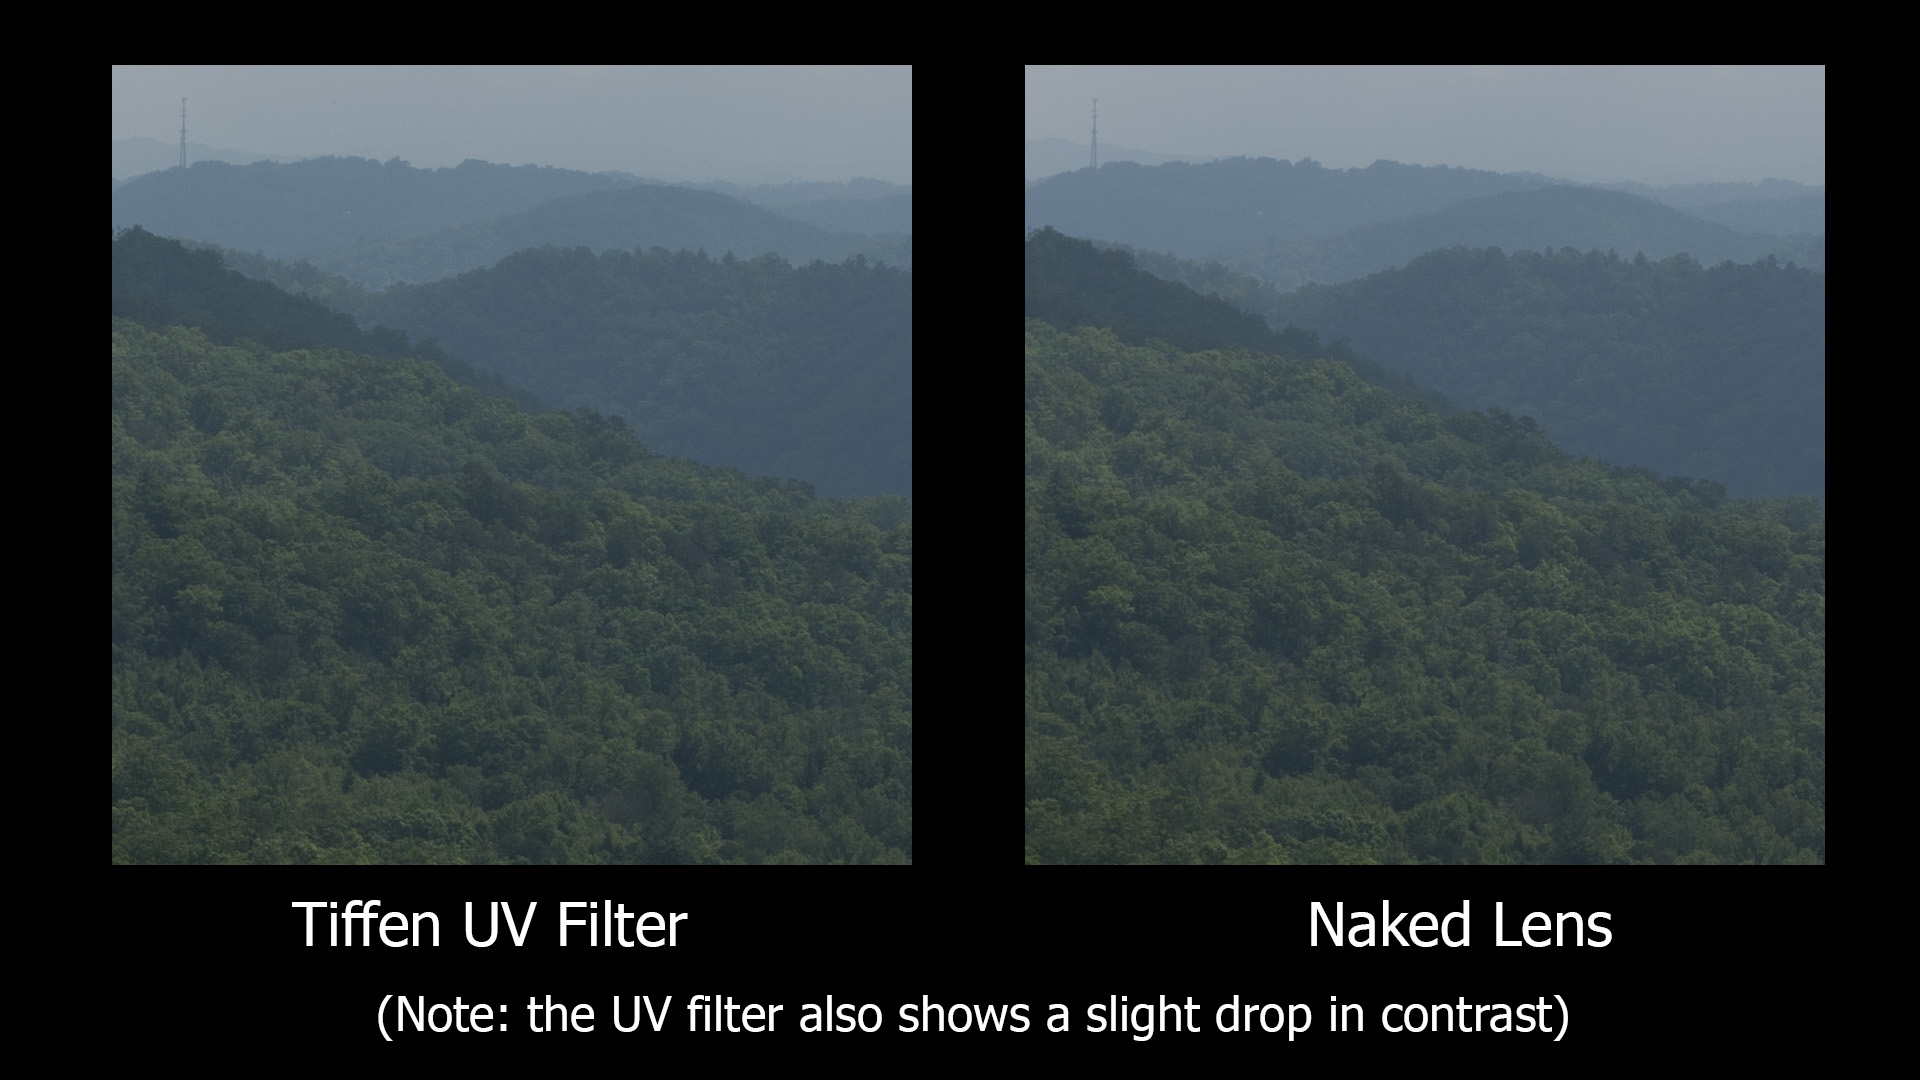 UV filter vs no filter sharpness